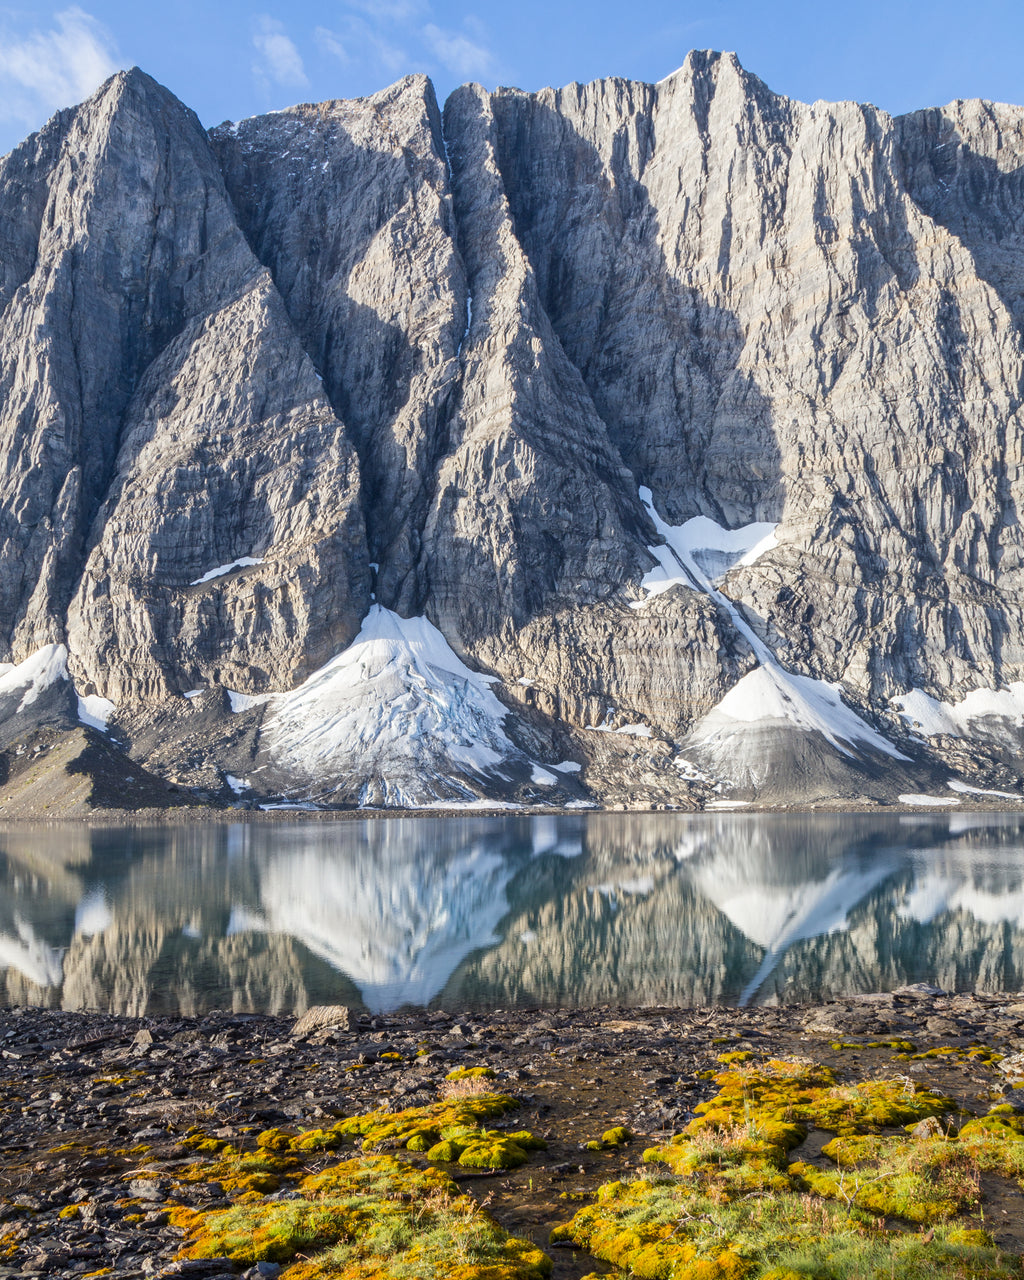 Rockwall reflecting in Floe Lake in Kootenay National Park, British Columbia.